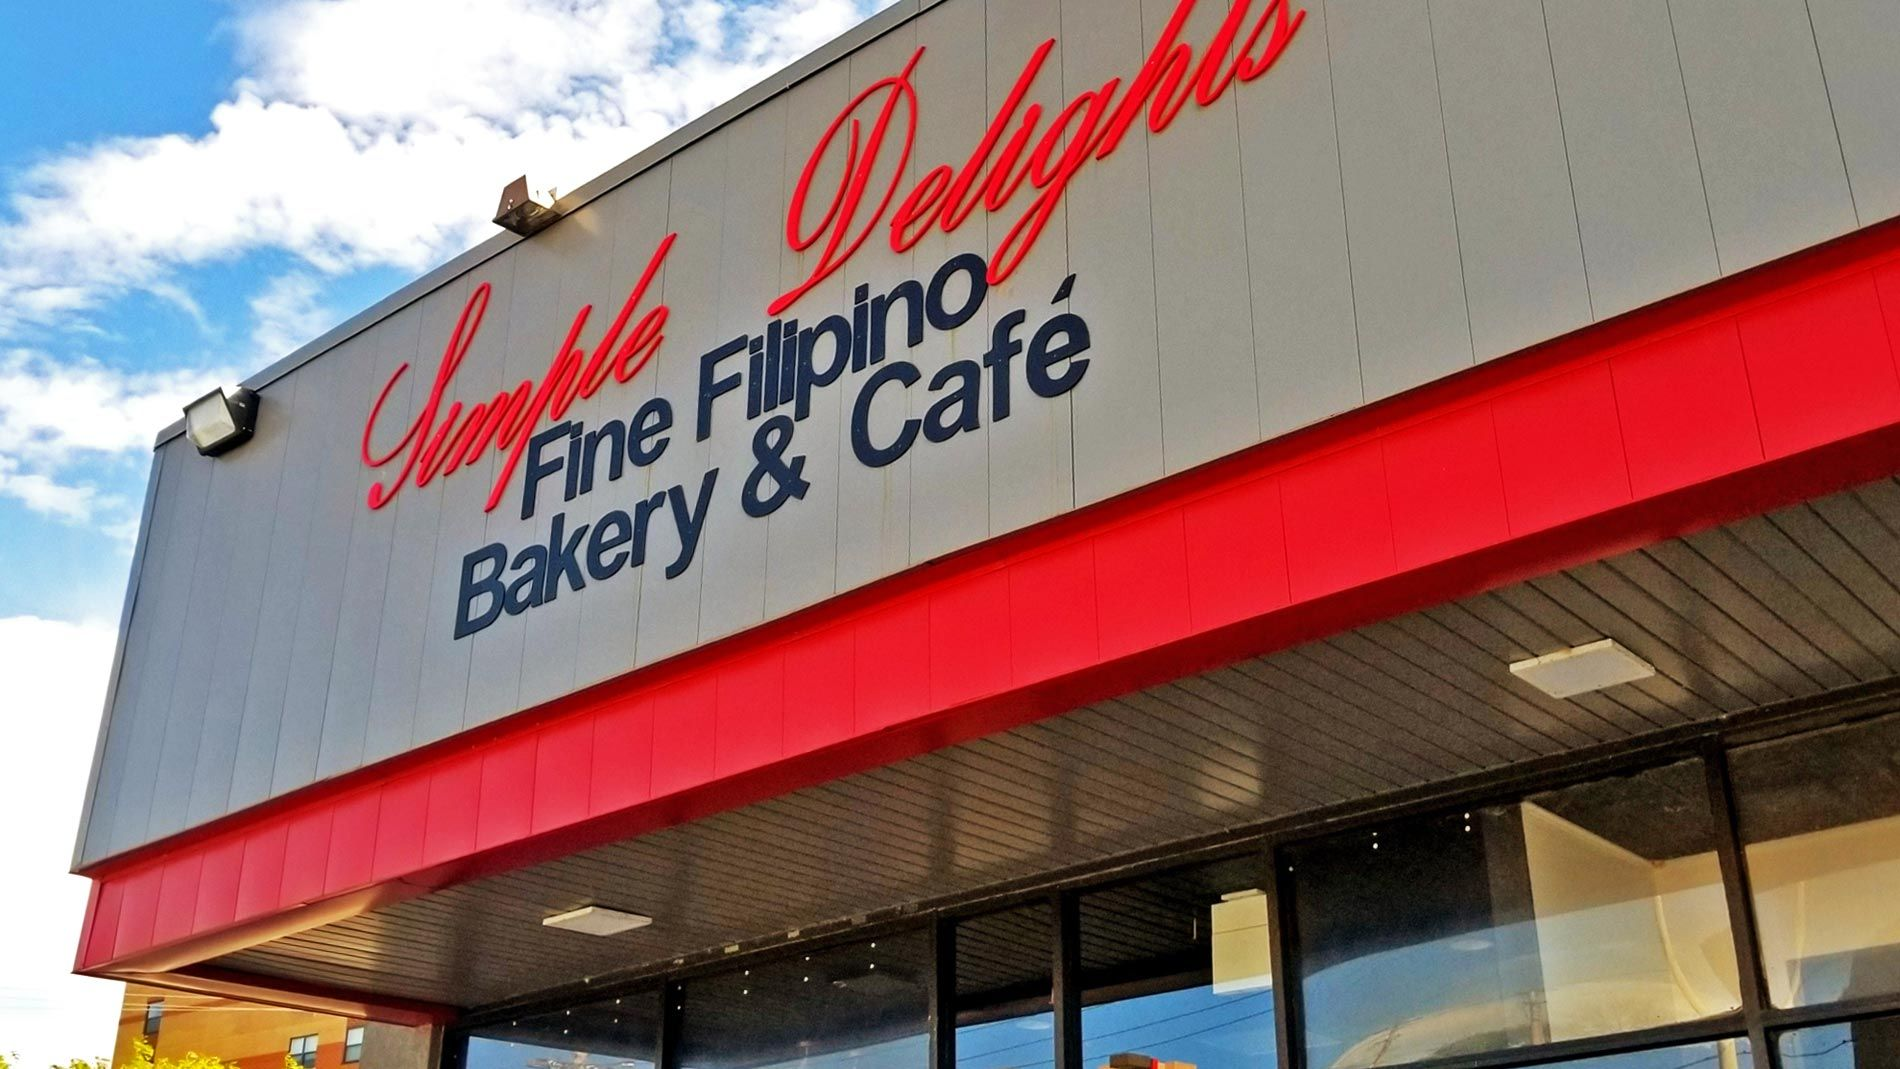 Simple Delights Filipino Bakery Cafe Chicago